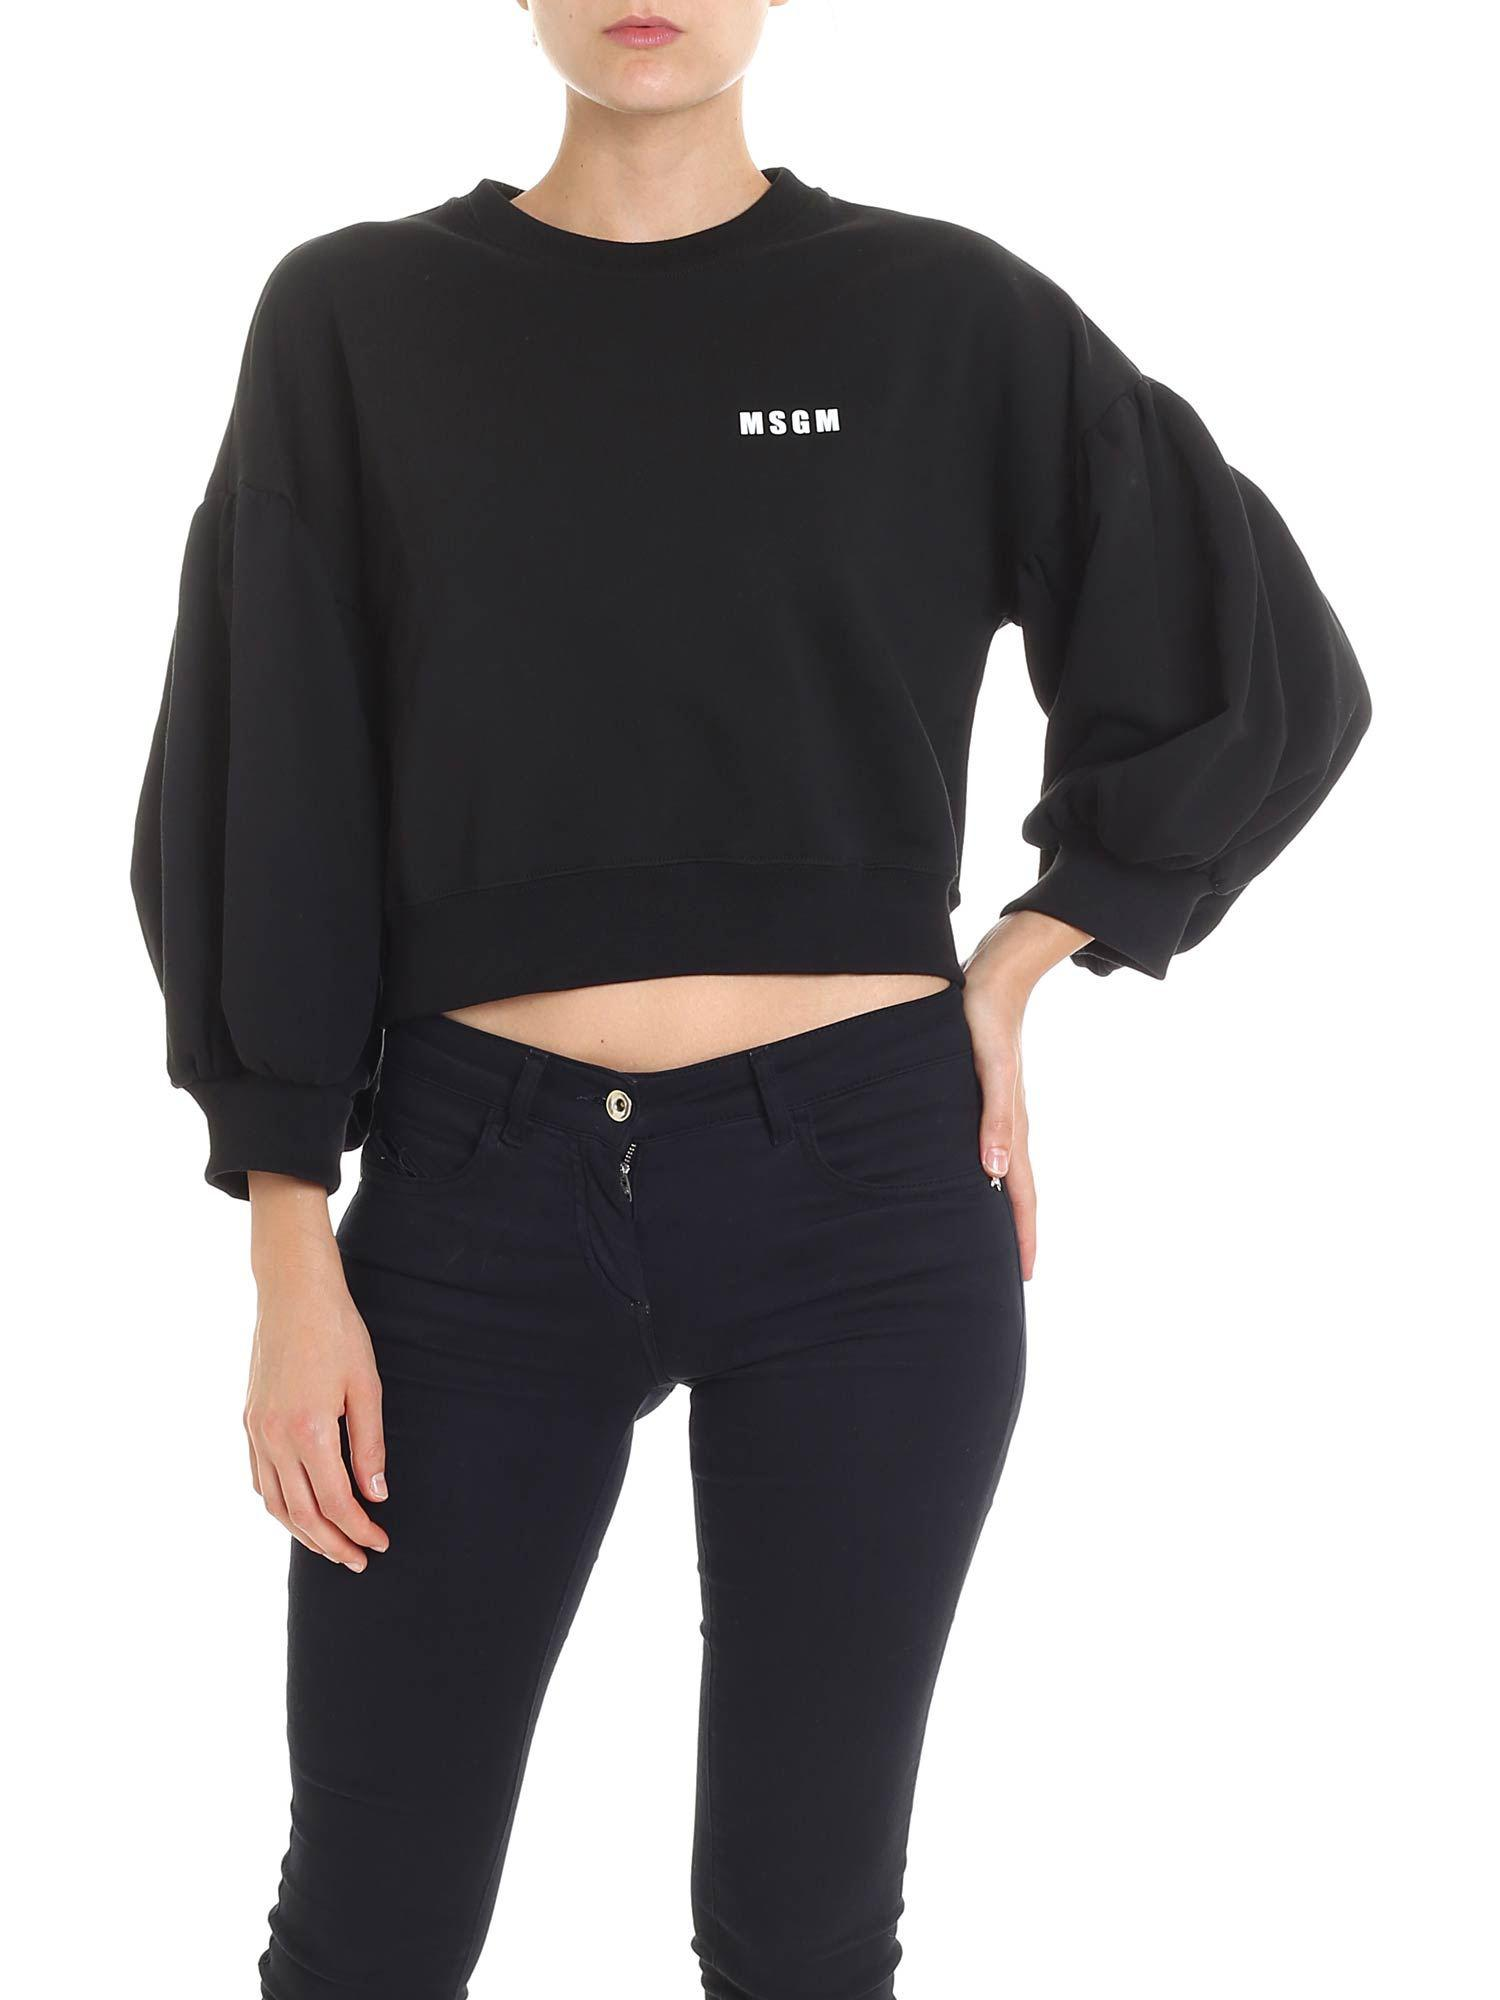 Msgm View Fullscreen Balloon Sweatshirt Black Lyst Crop Sleeve fa8xrfwUqv